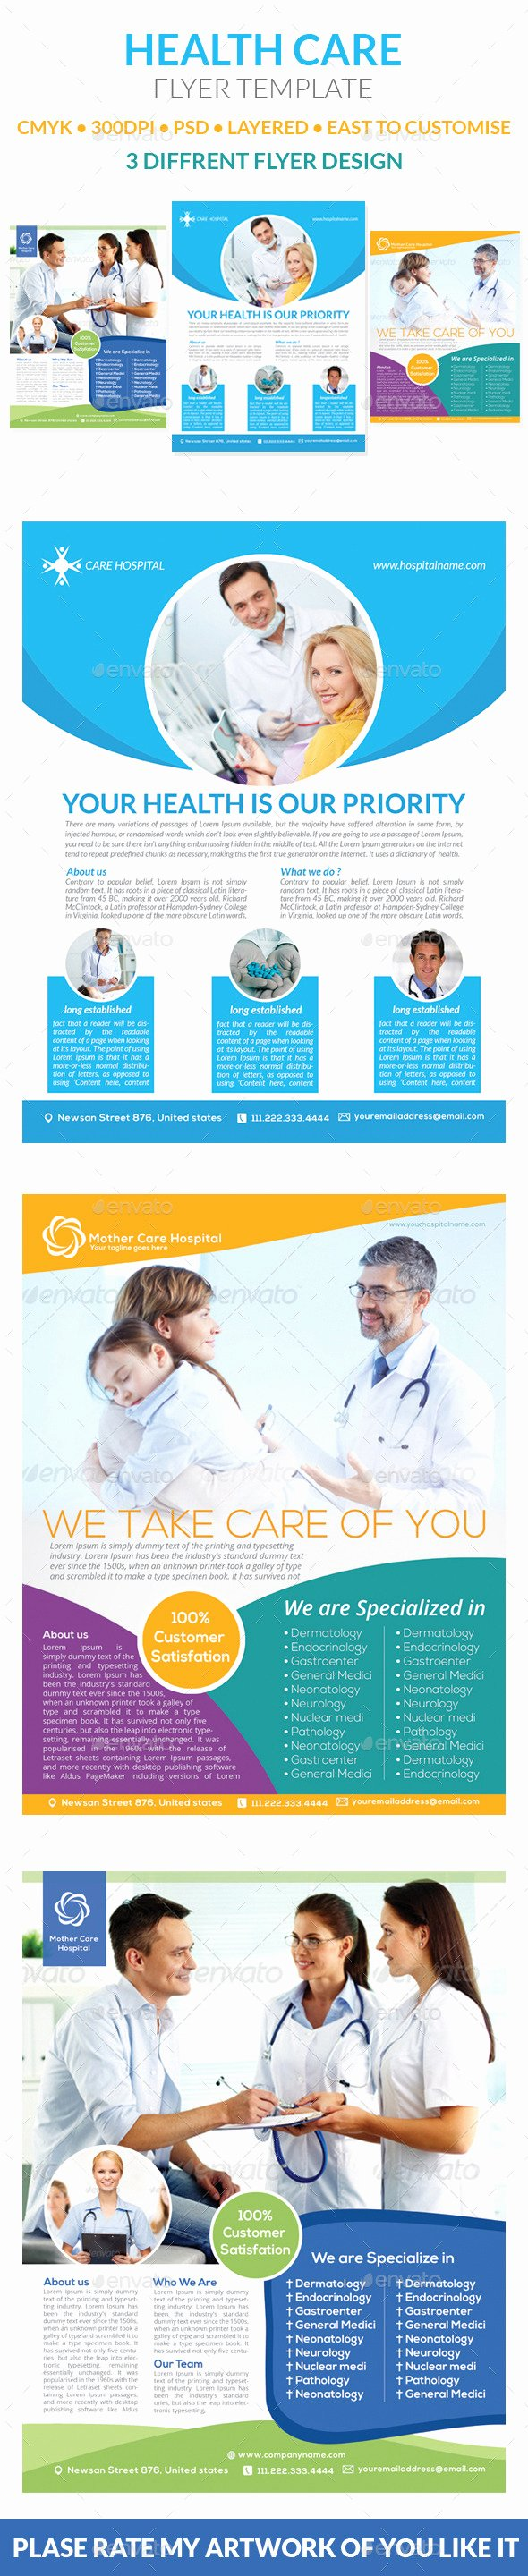 Home Health Care Flyers Unique Health Care Flyer Templates by Graphicshint